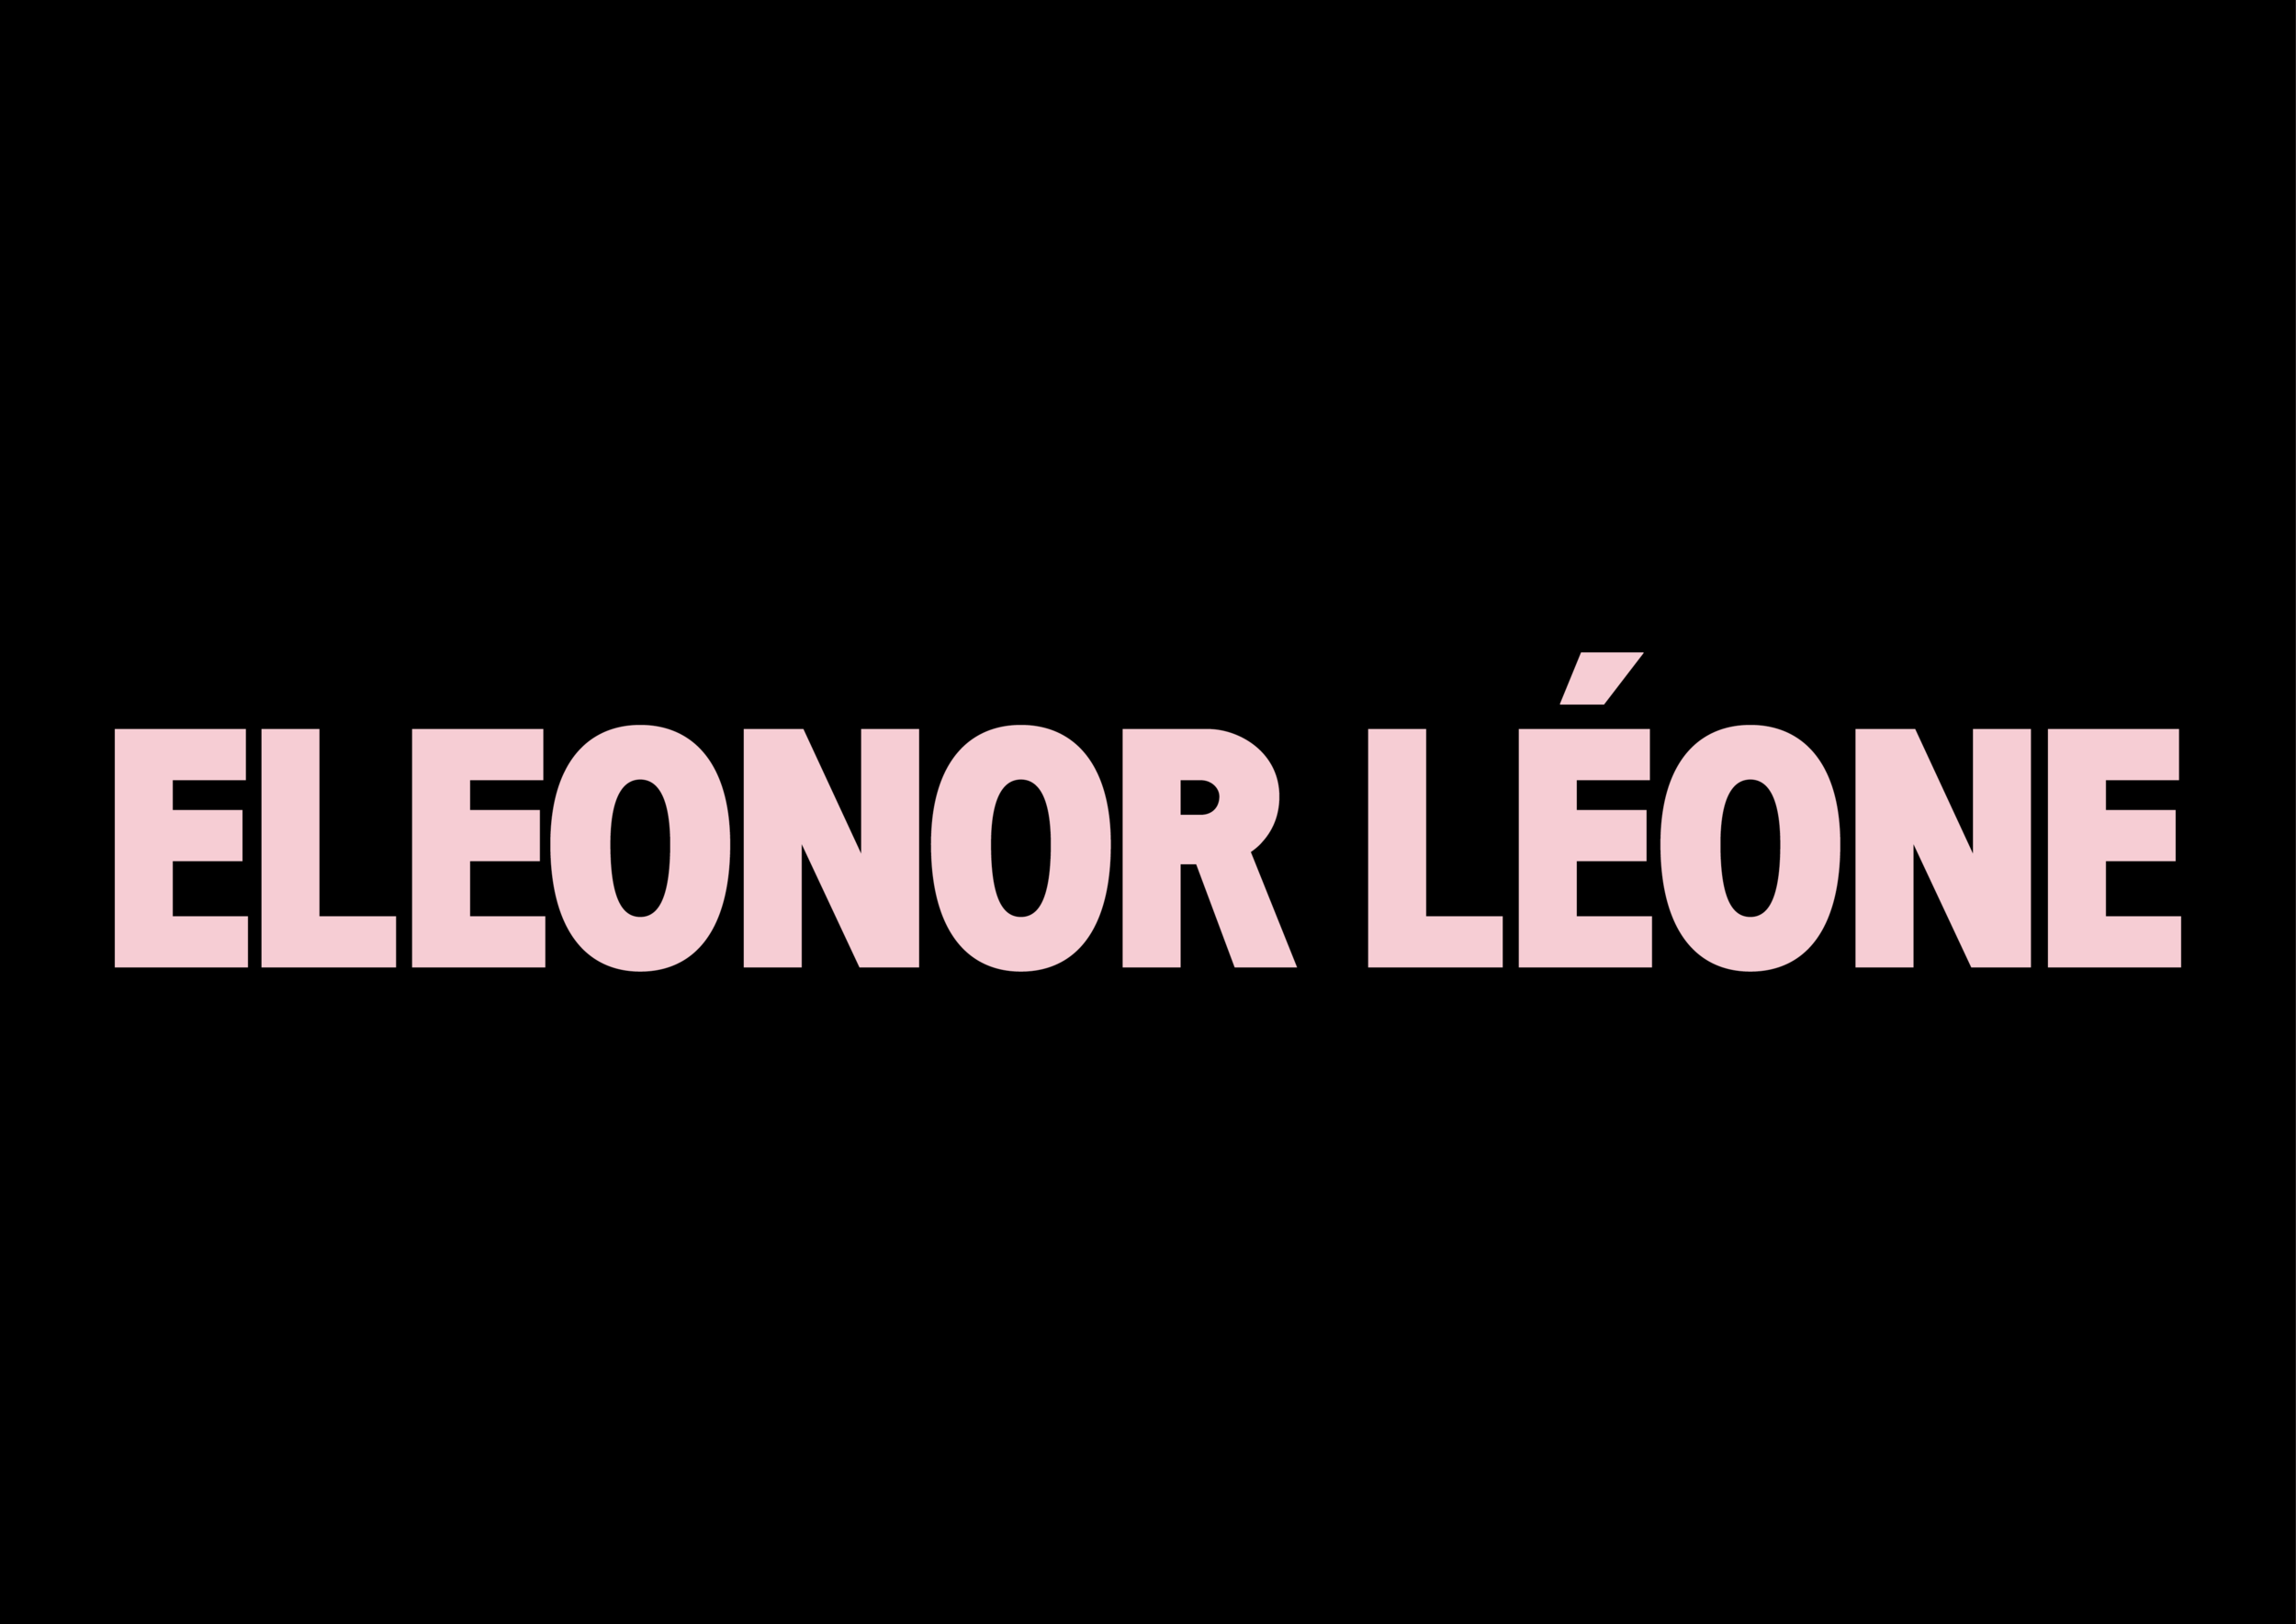 leone_logos3.png